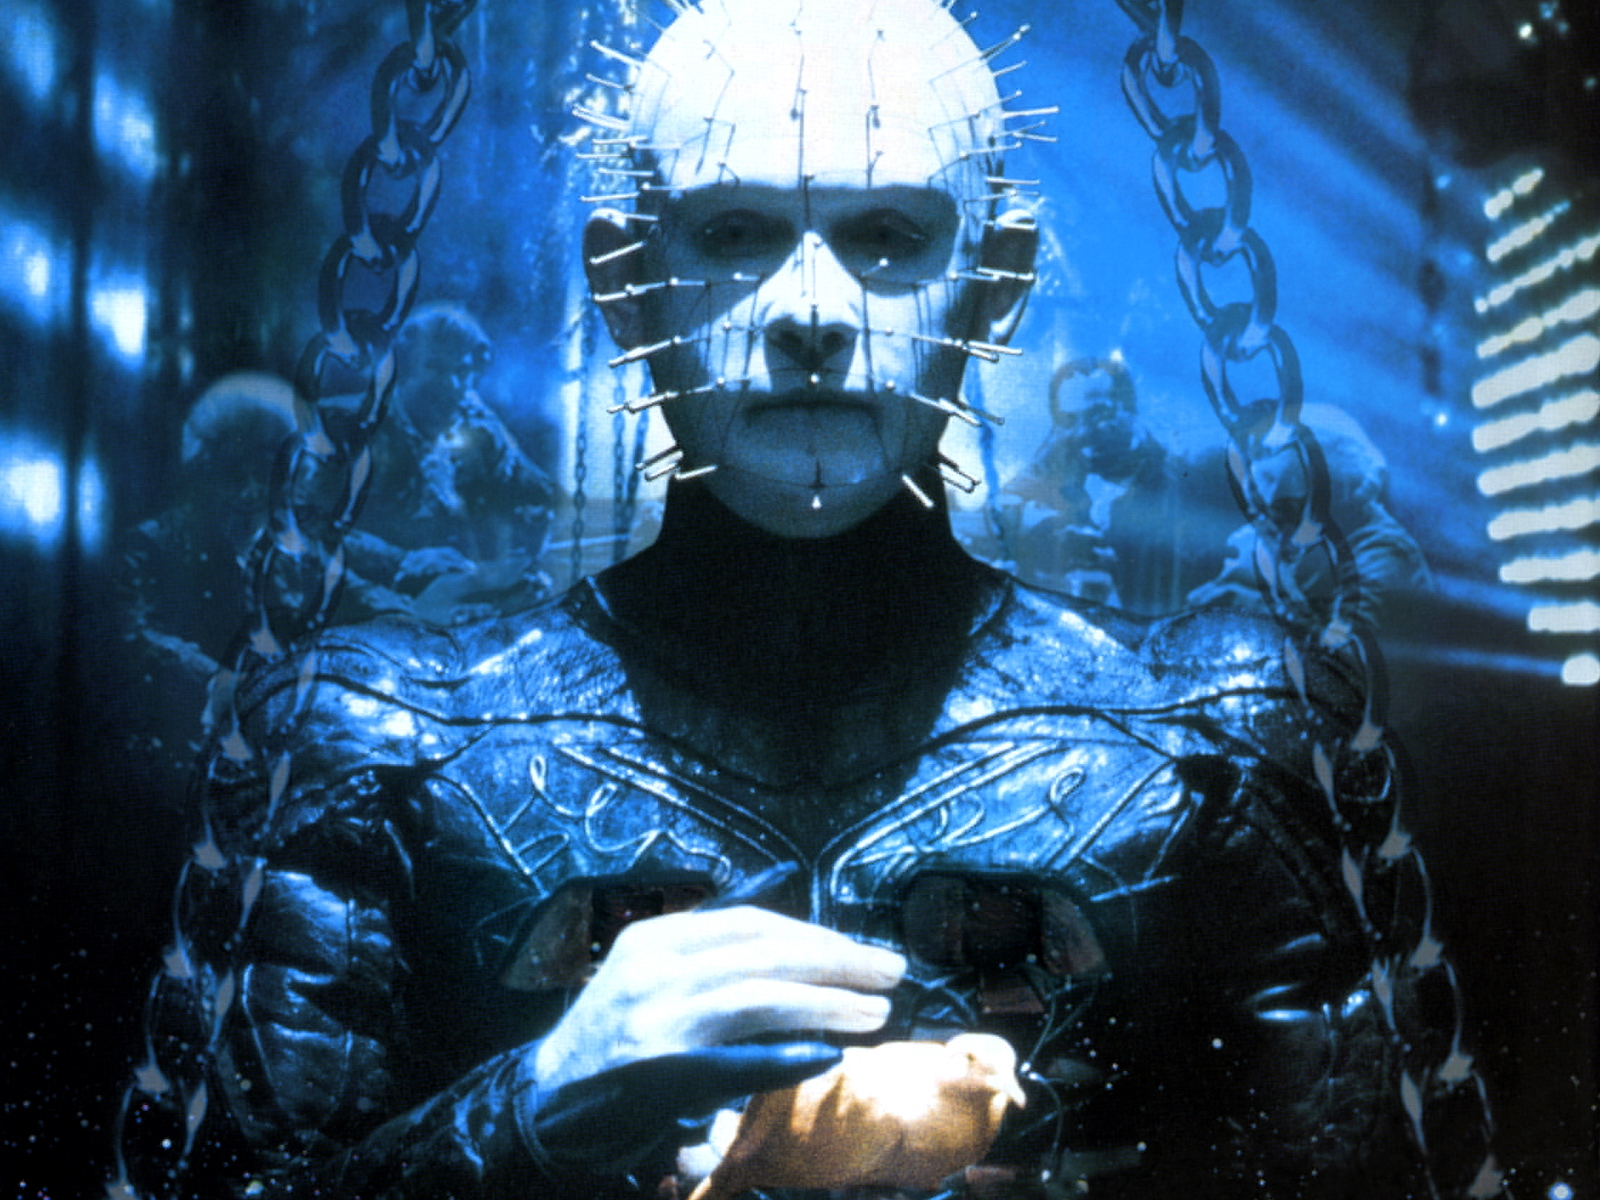 Hellraiser Wallpaper and Background Image | 1600x1200 | ID ...